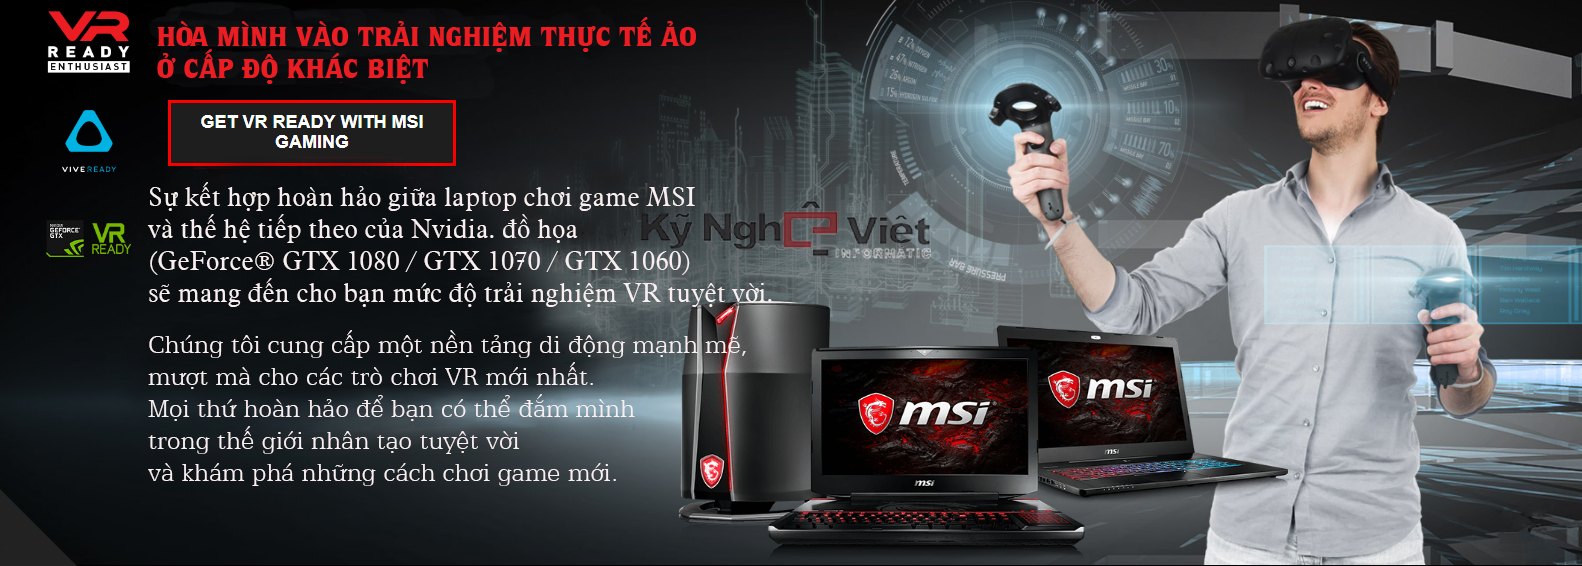 MSI GE72MVR-7RG Core i7 7700HQ 16GB 17.3 inch Full HD Windows 10